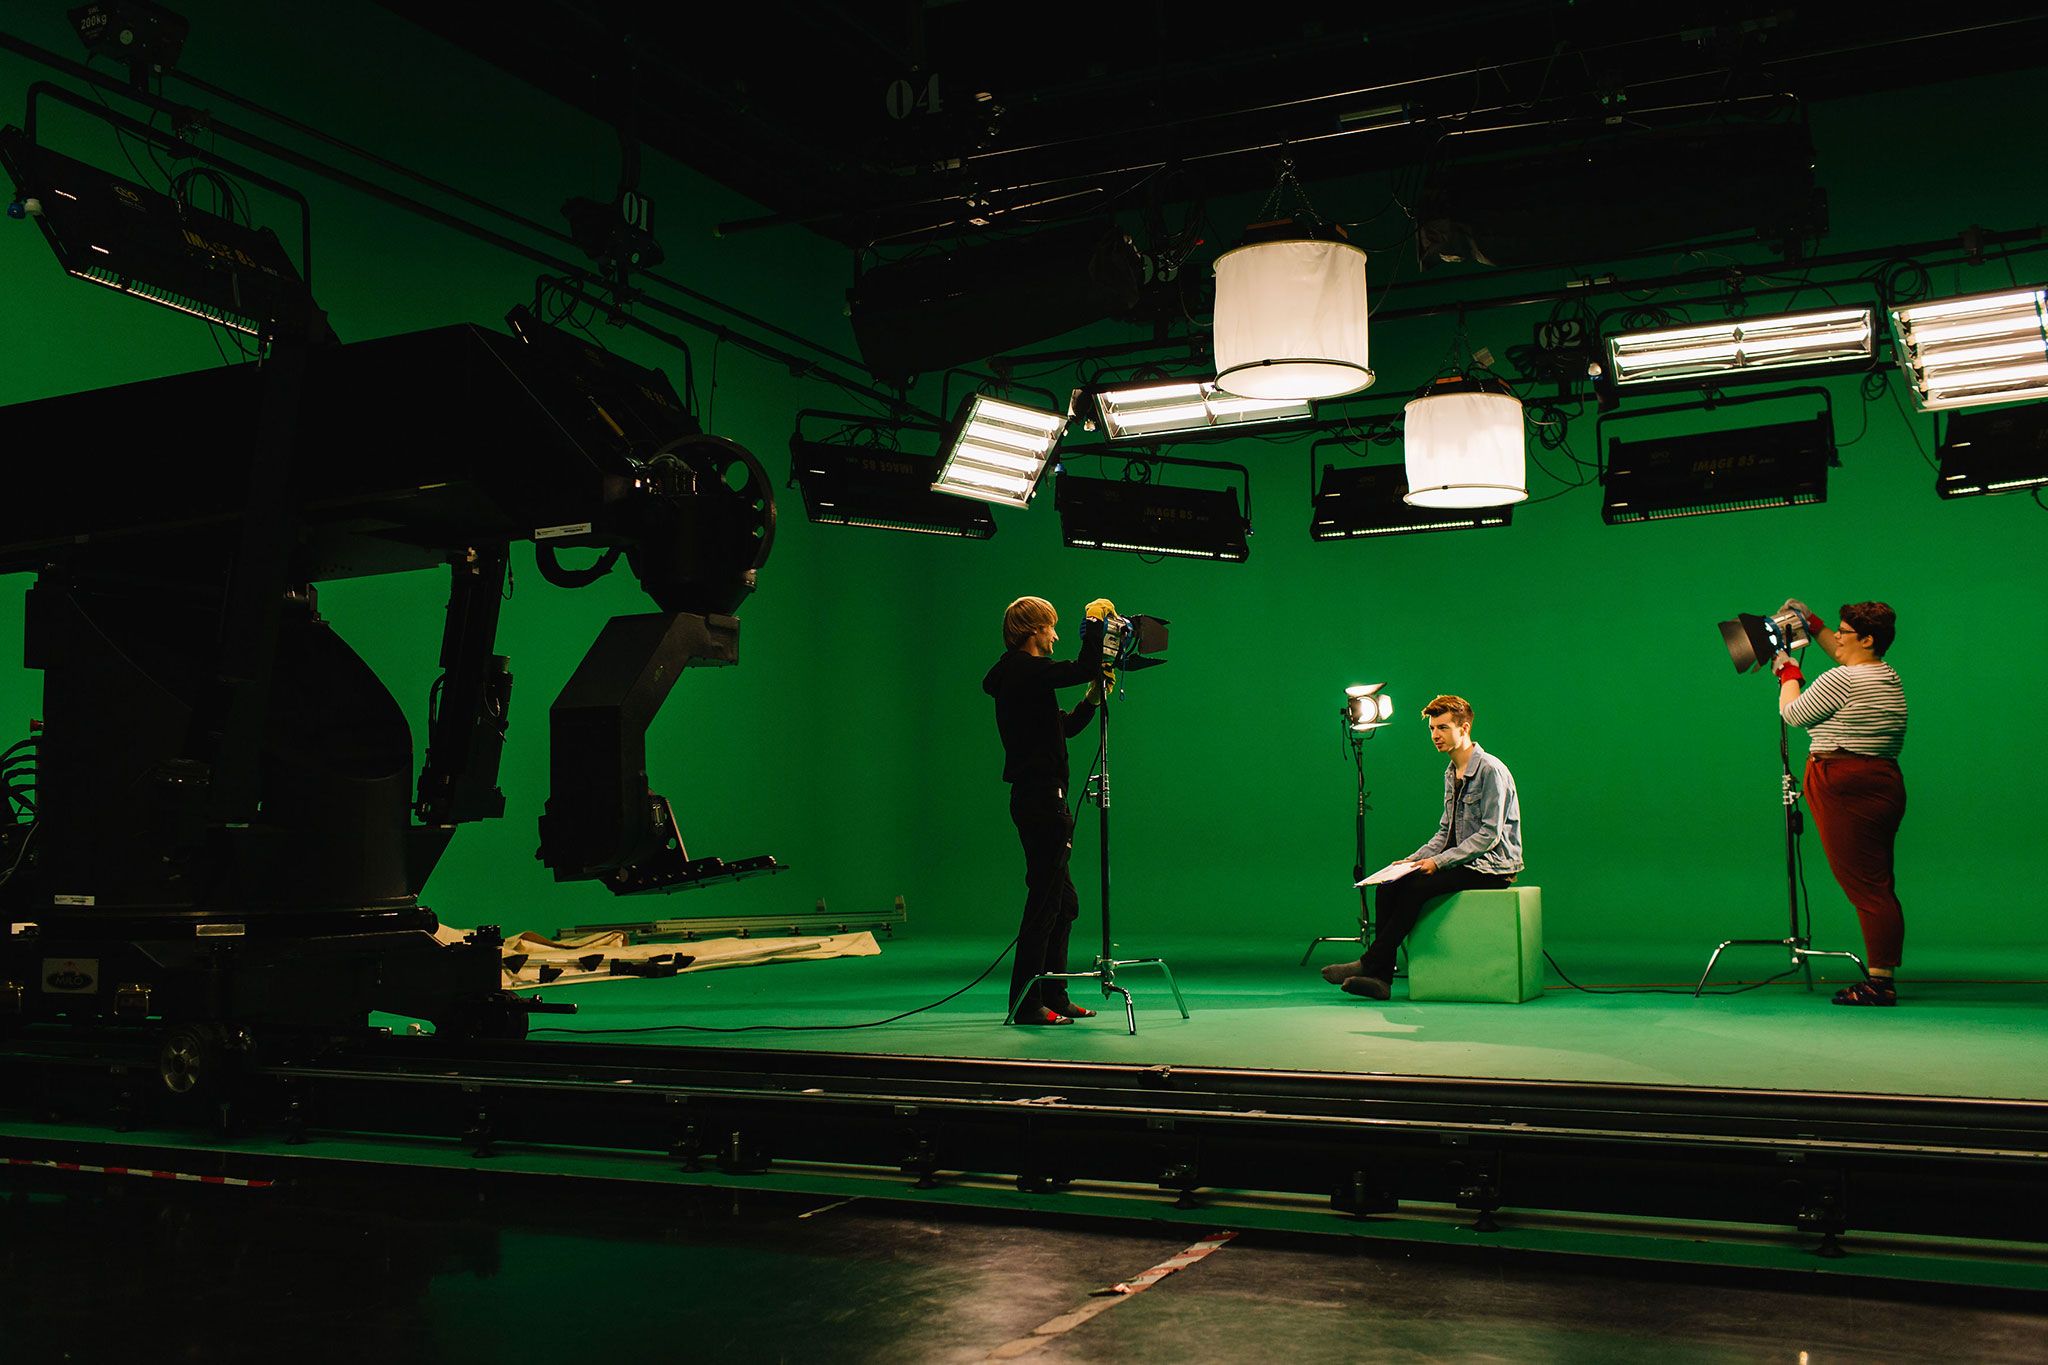 TV Studio B (Giant Green Screen)